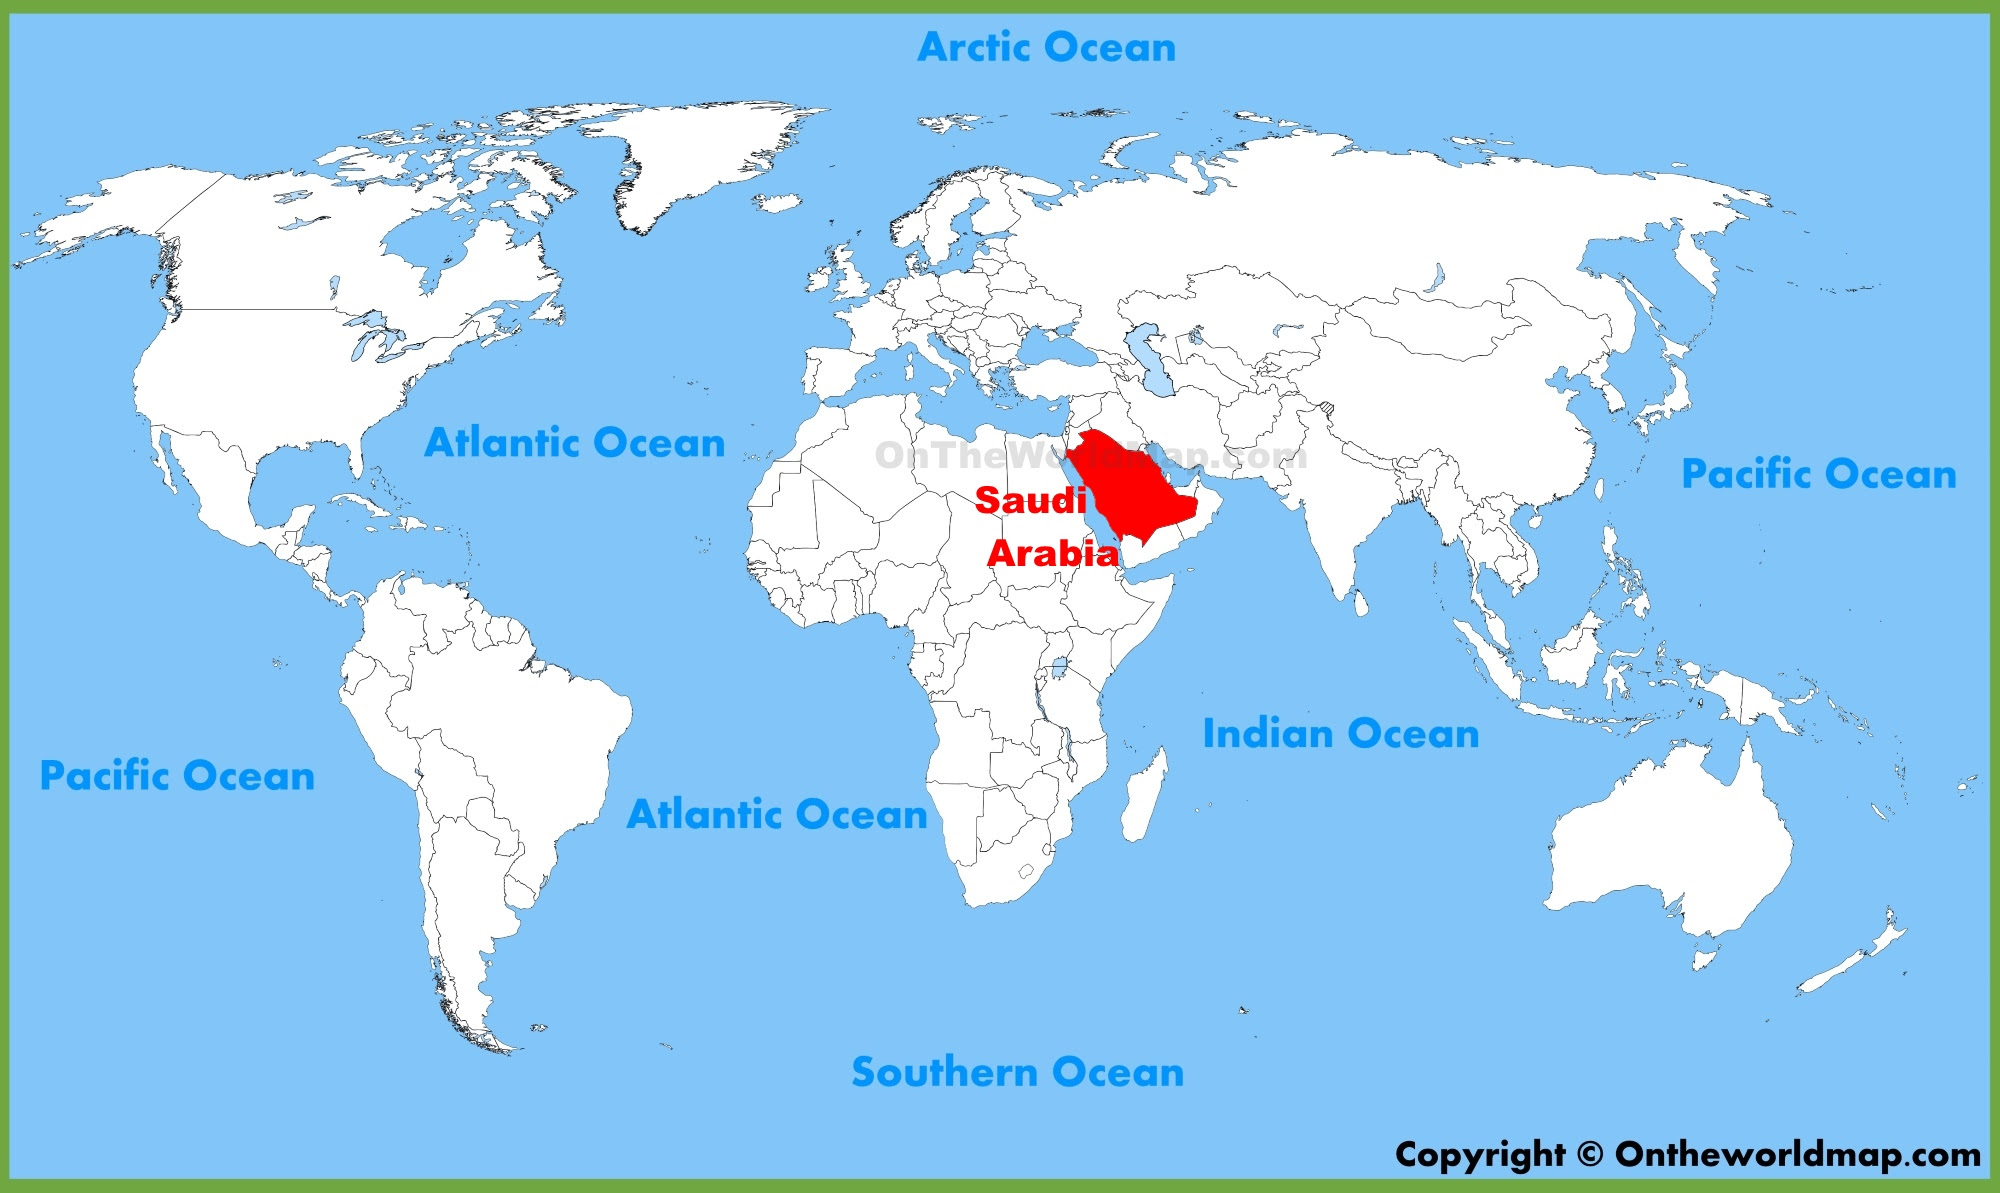 Saudi Arabia On World Map Saudi Arabia Location On World Map | Campus Map